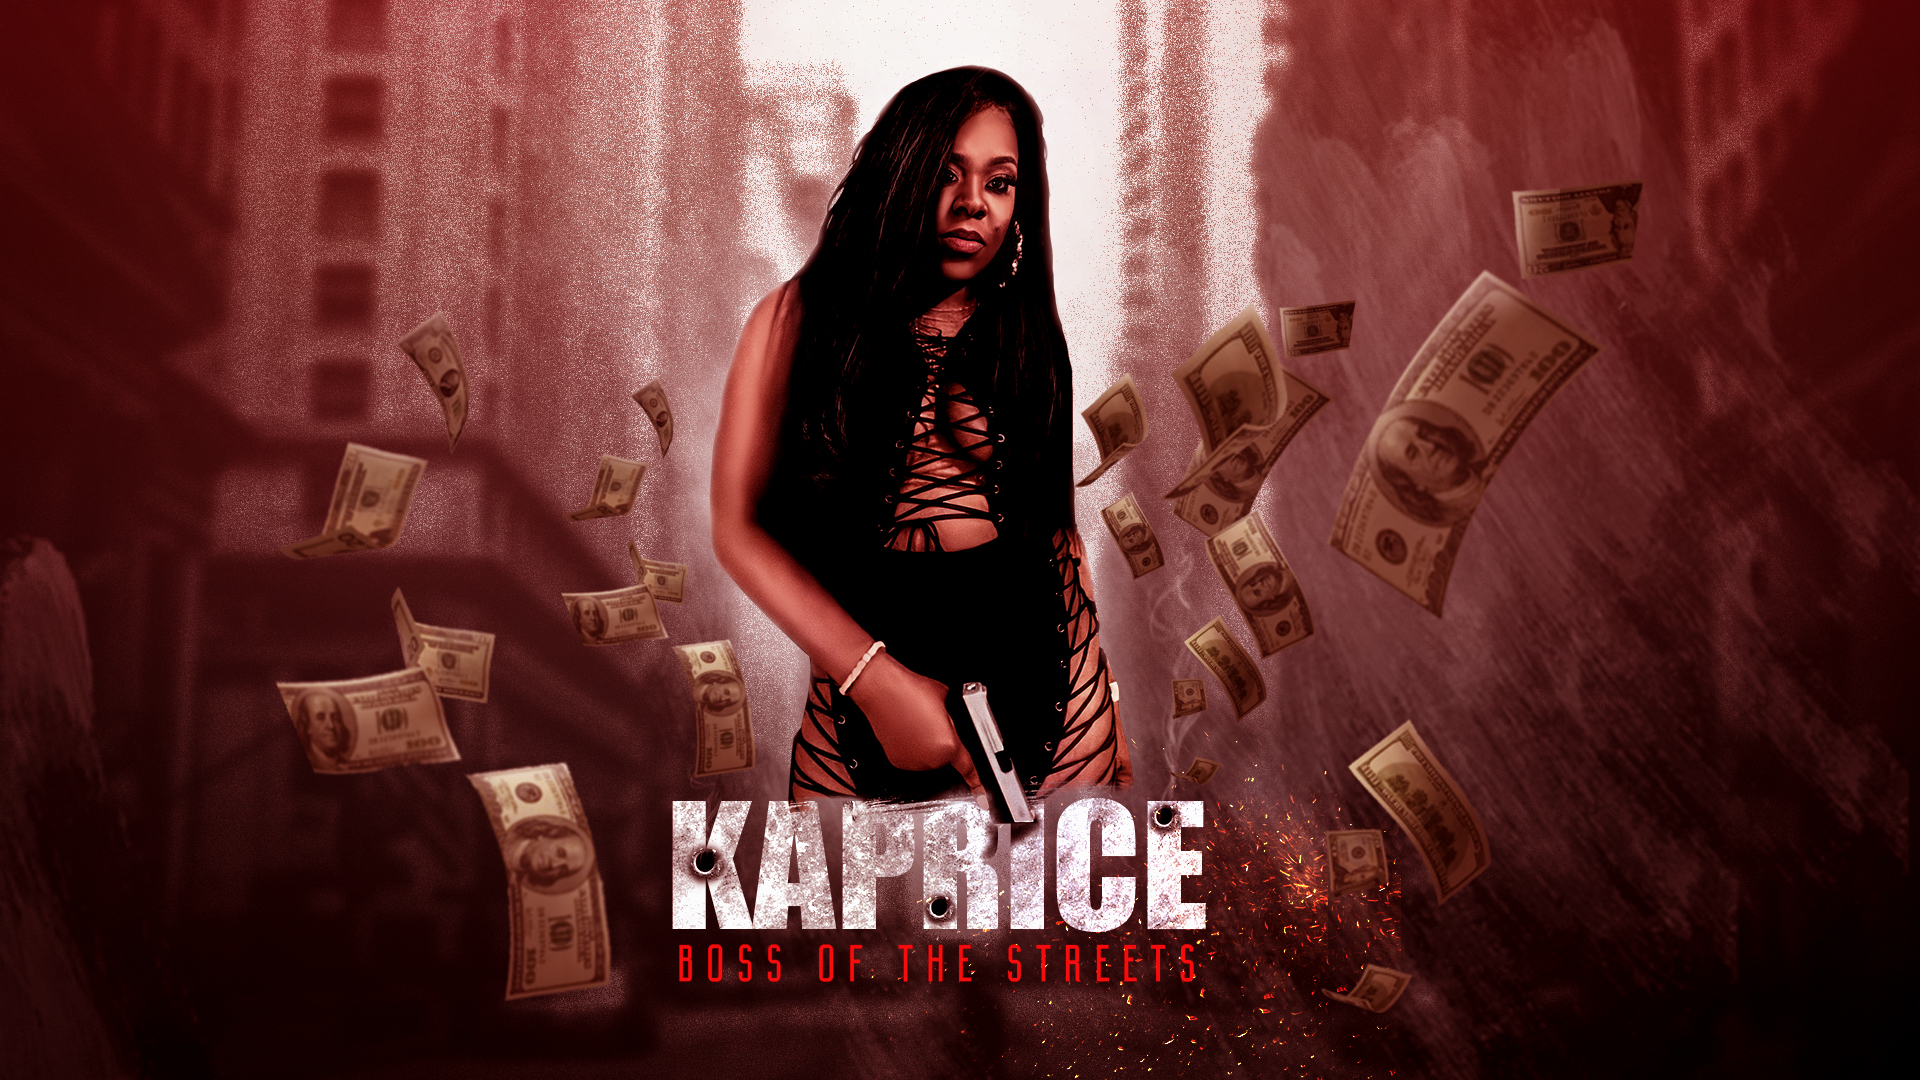 Kaprice Boss Of The Streets